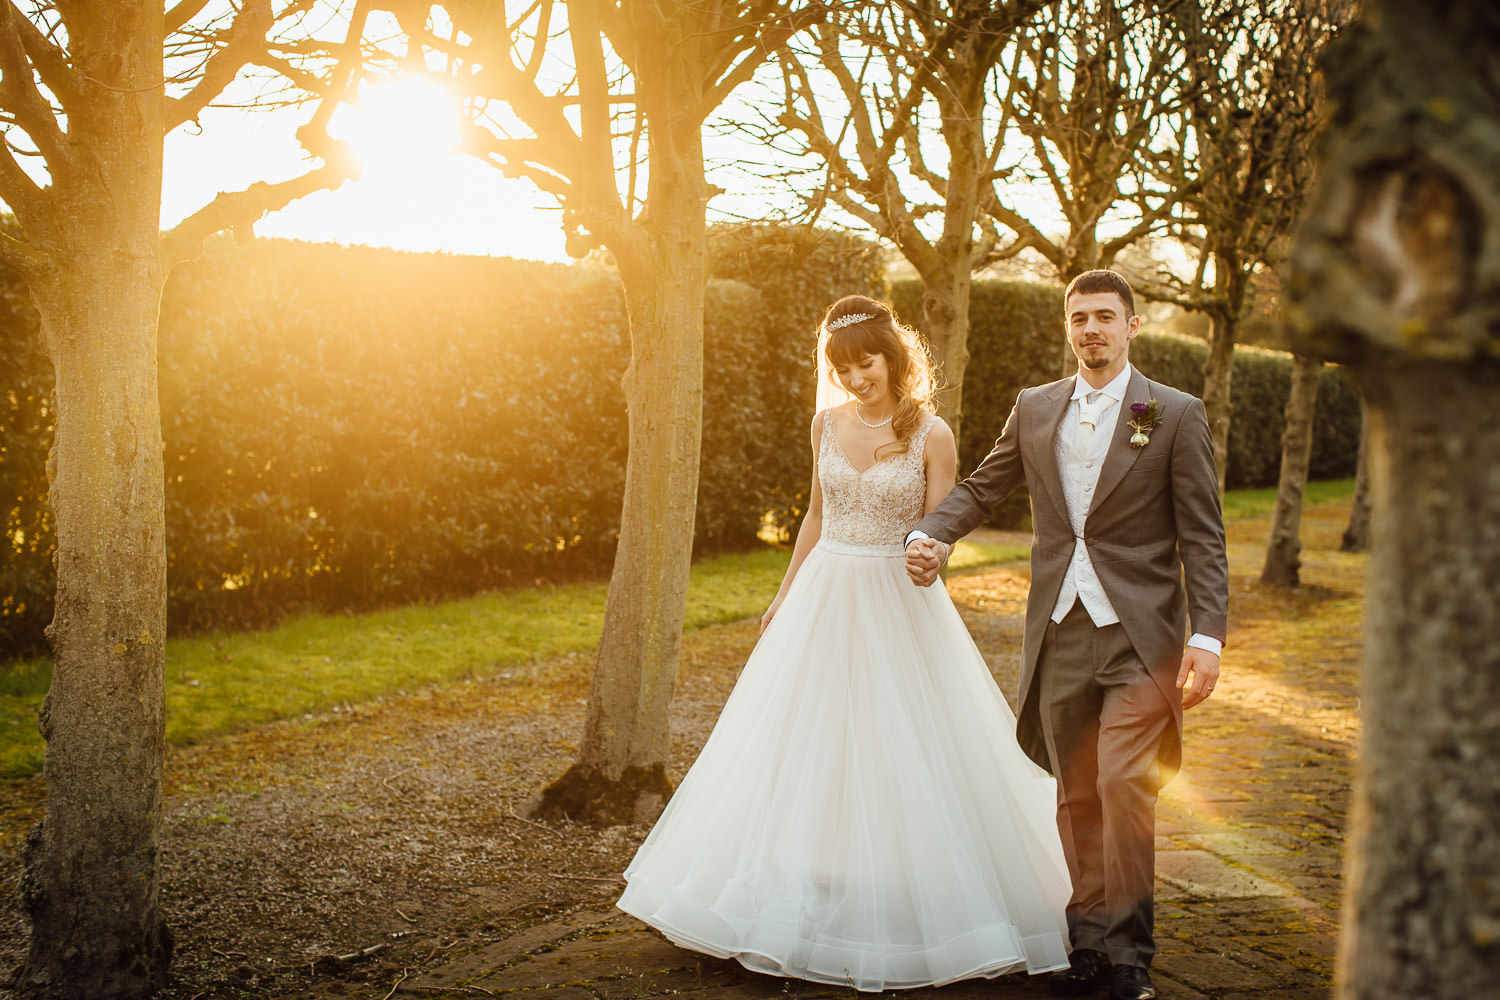 Sunsetting on wedding couple walking through tree lined path in Thornton Manor